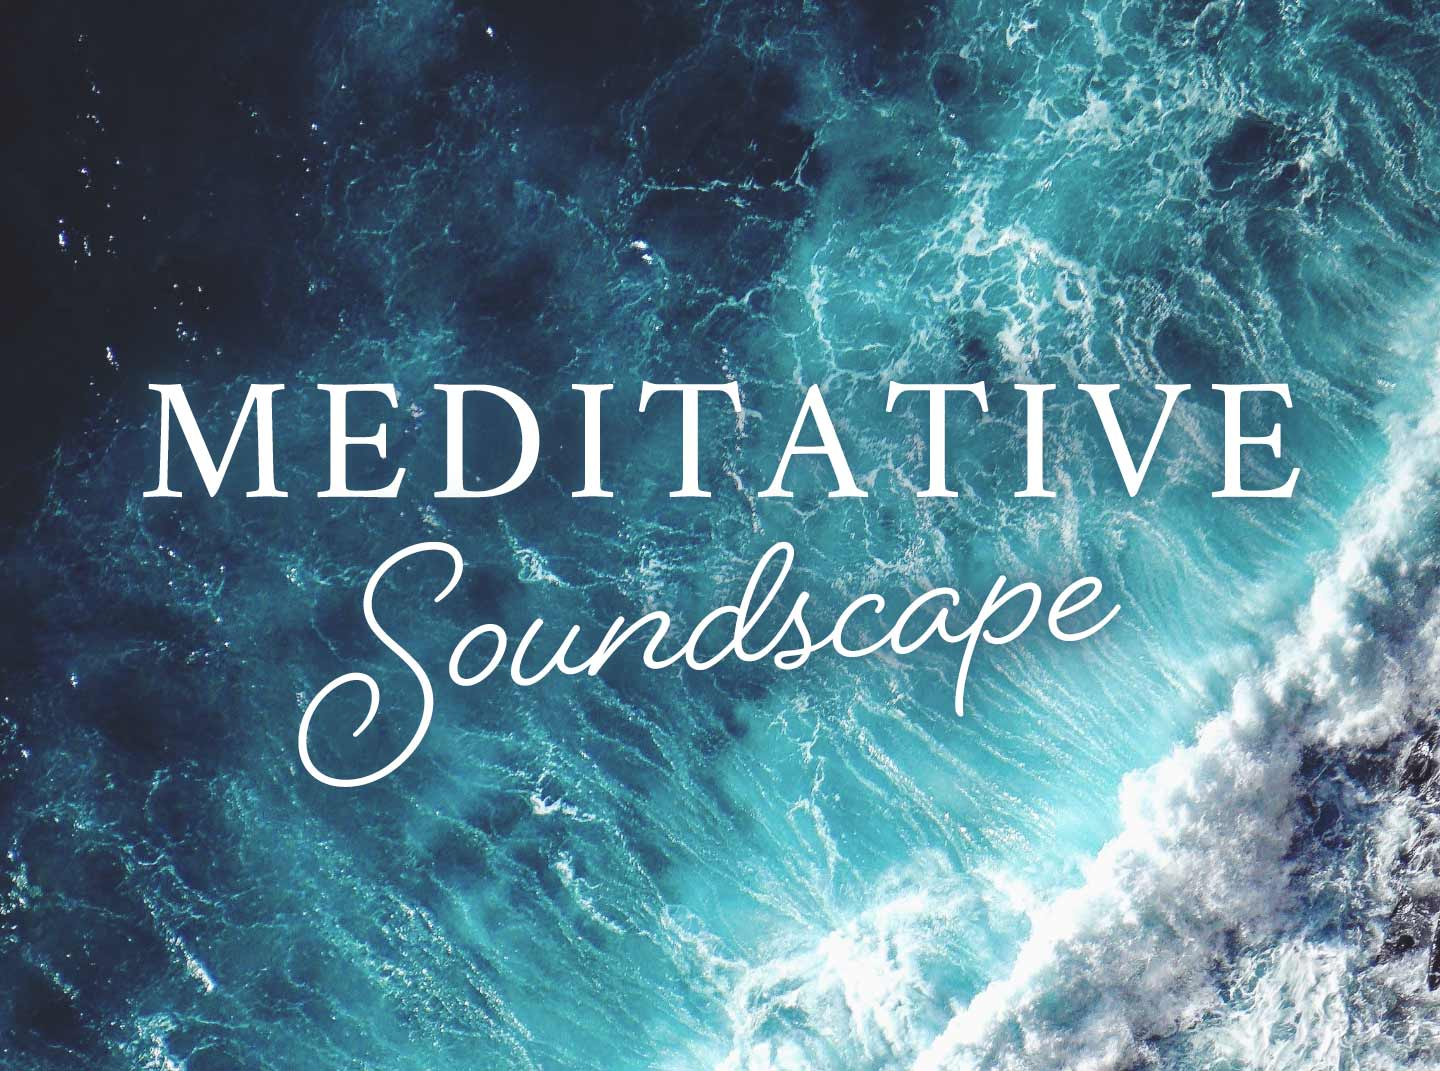 Meditative Soundscape